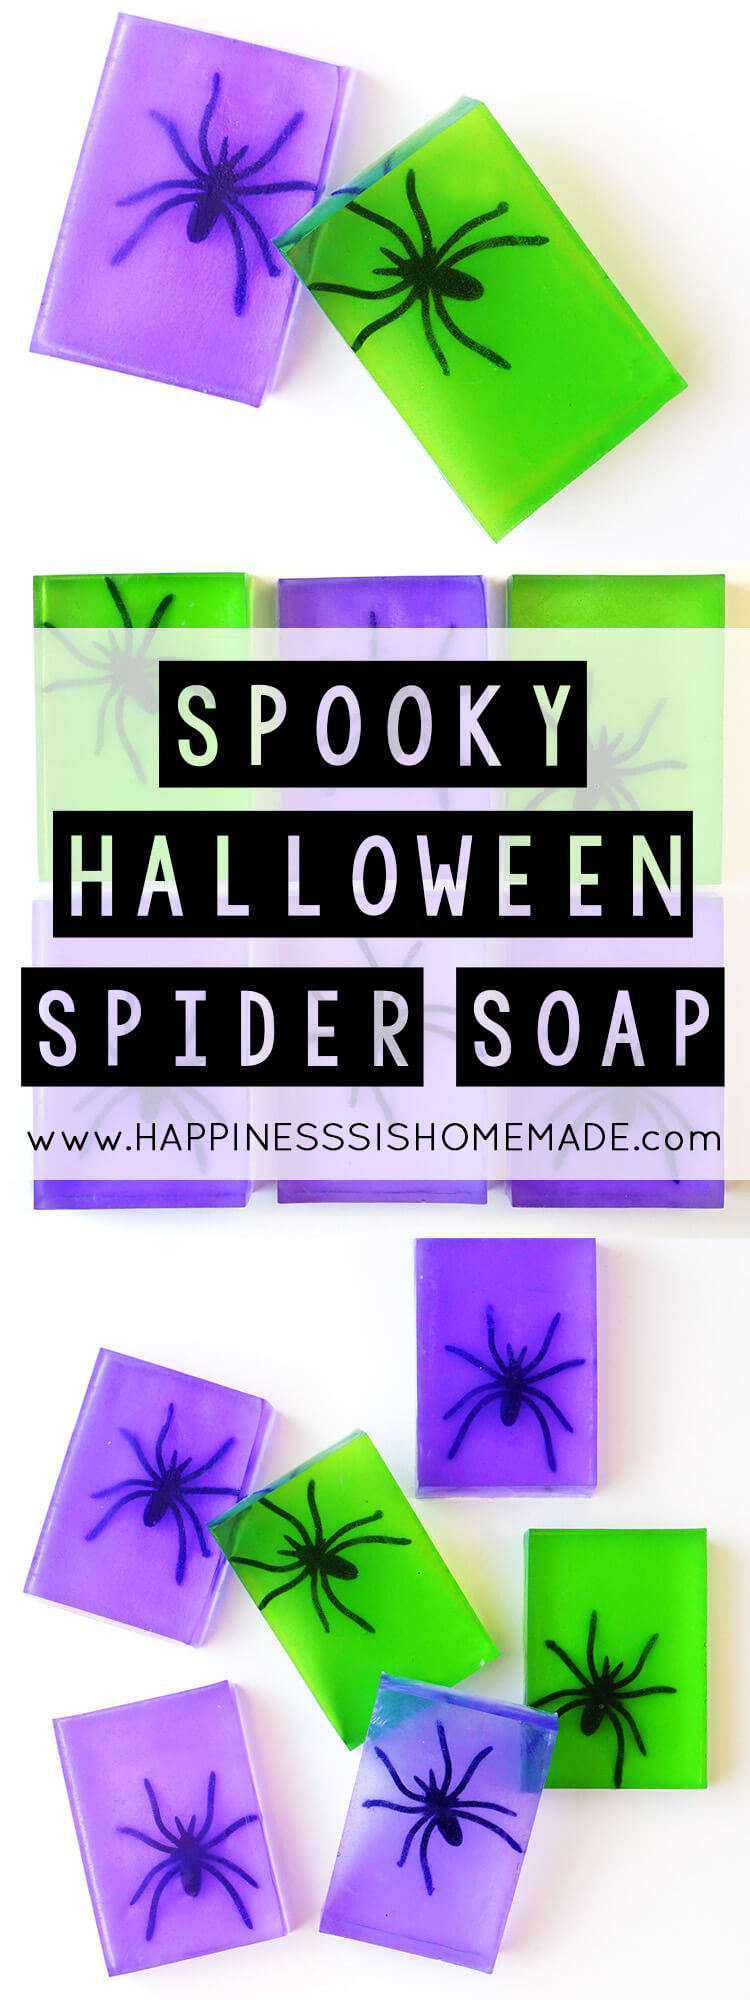 Spooky Spider Soap Hallowen Craft